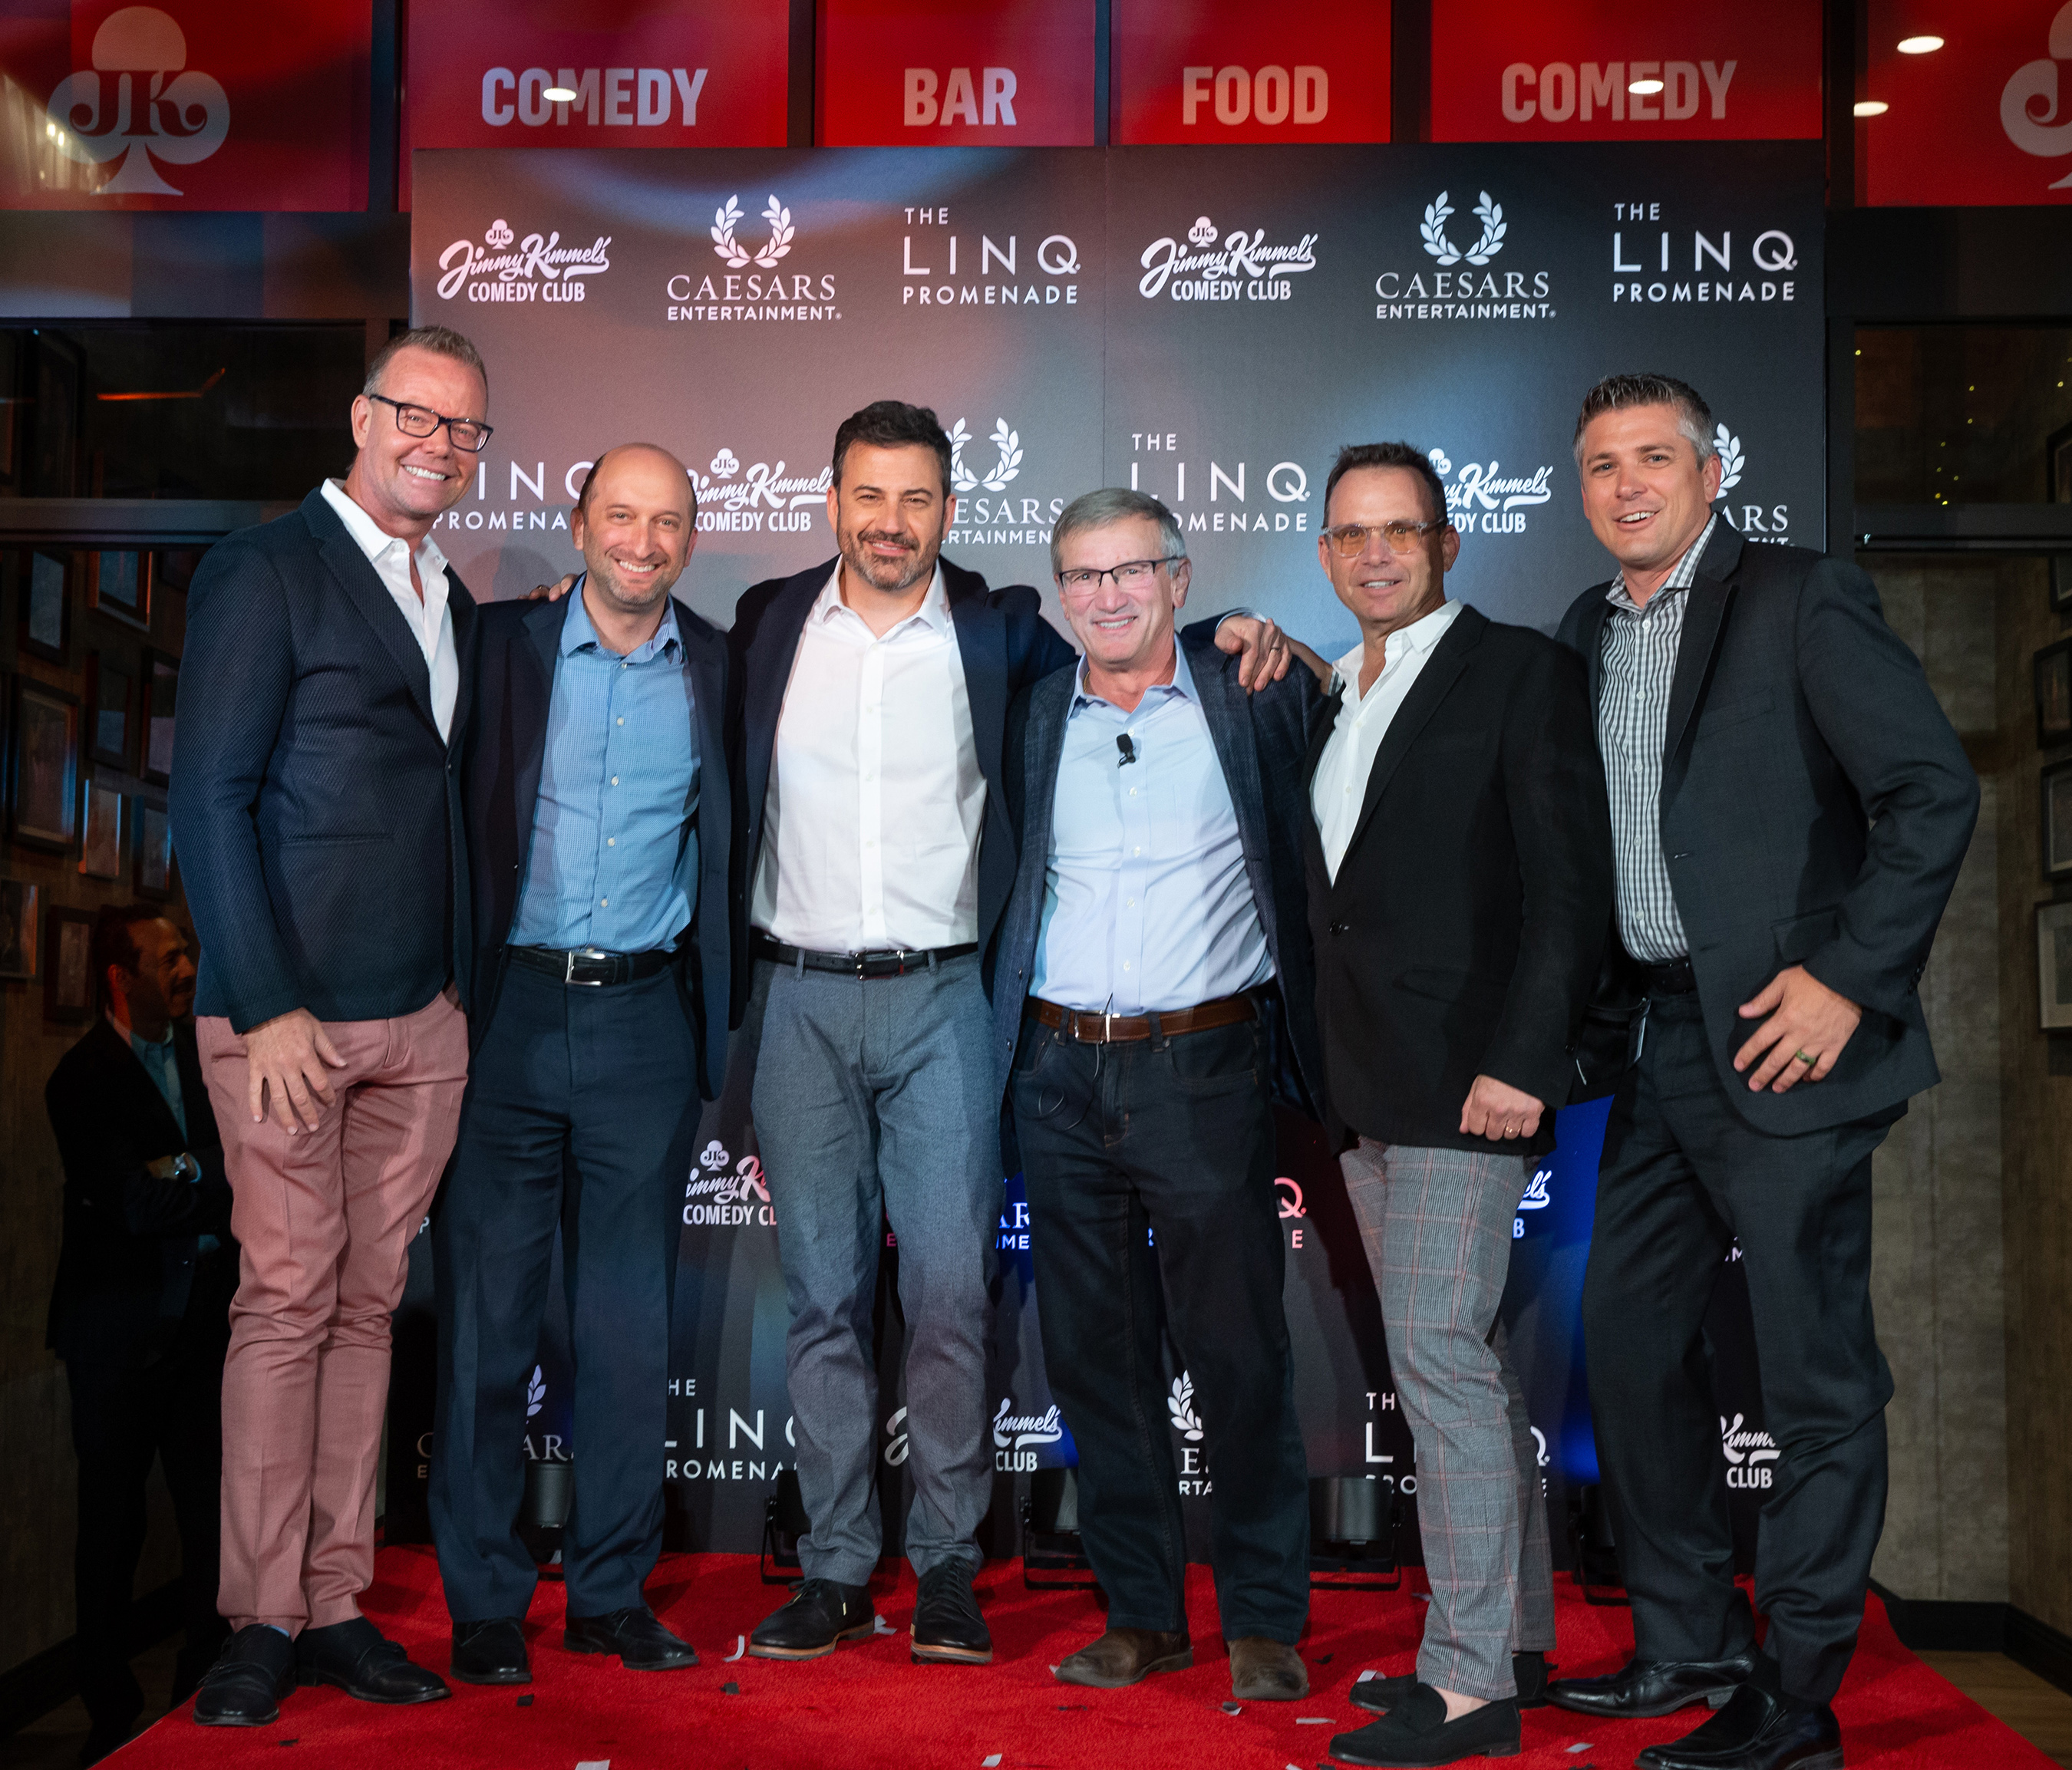 Jimmy Kimmel's Comedy Club Grand Opening - Shaun Swanger, Jason Gastwirth, Jimmy Kimmel, Tony Rodio, Michael Gruber, Damian Costa (Photo Credit: Kabik Photo Group)